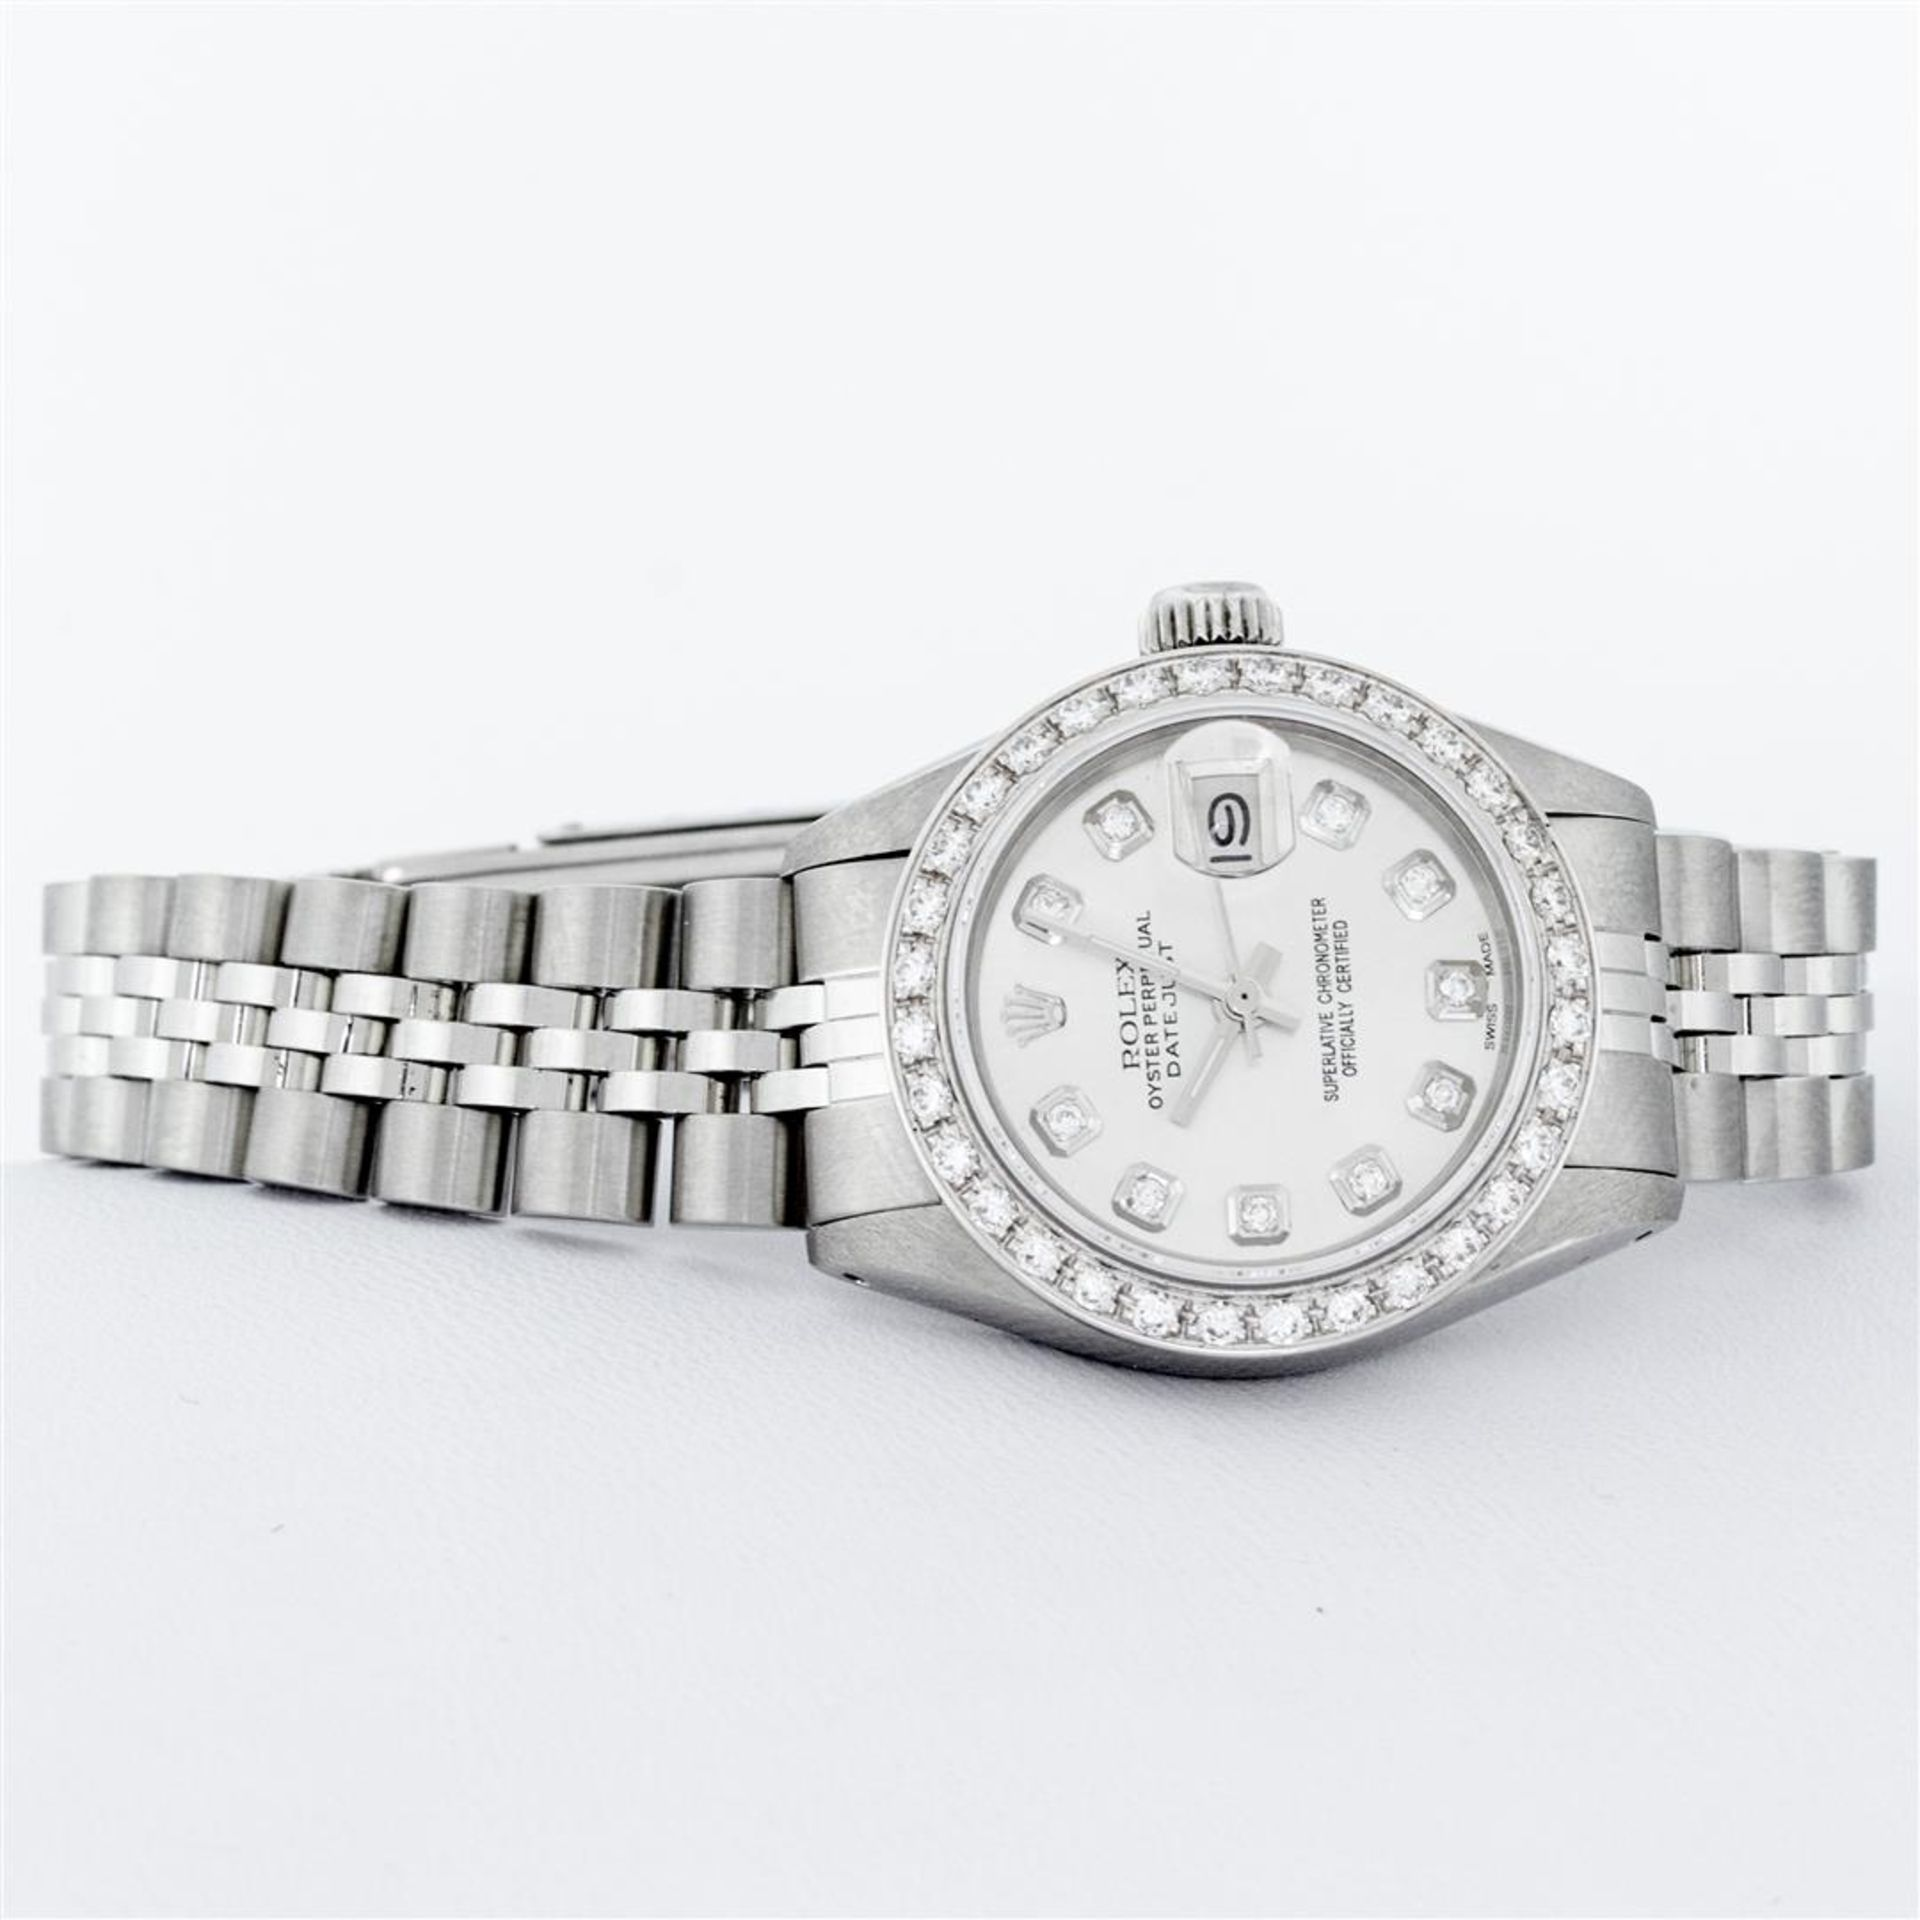 Rolex Ladies Stainless Steel Silver Diamond 26MM Oyster Perpetual Datejust - Image 4 of 9